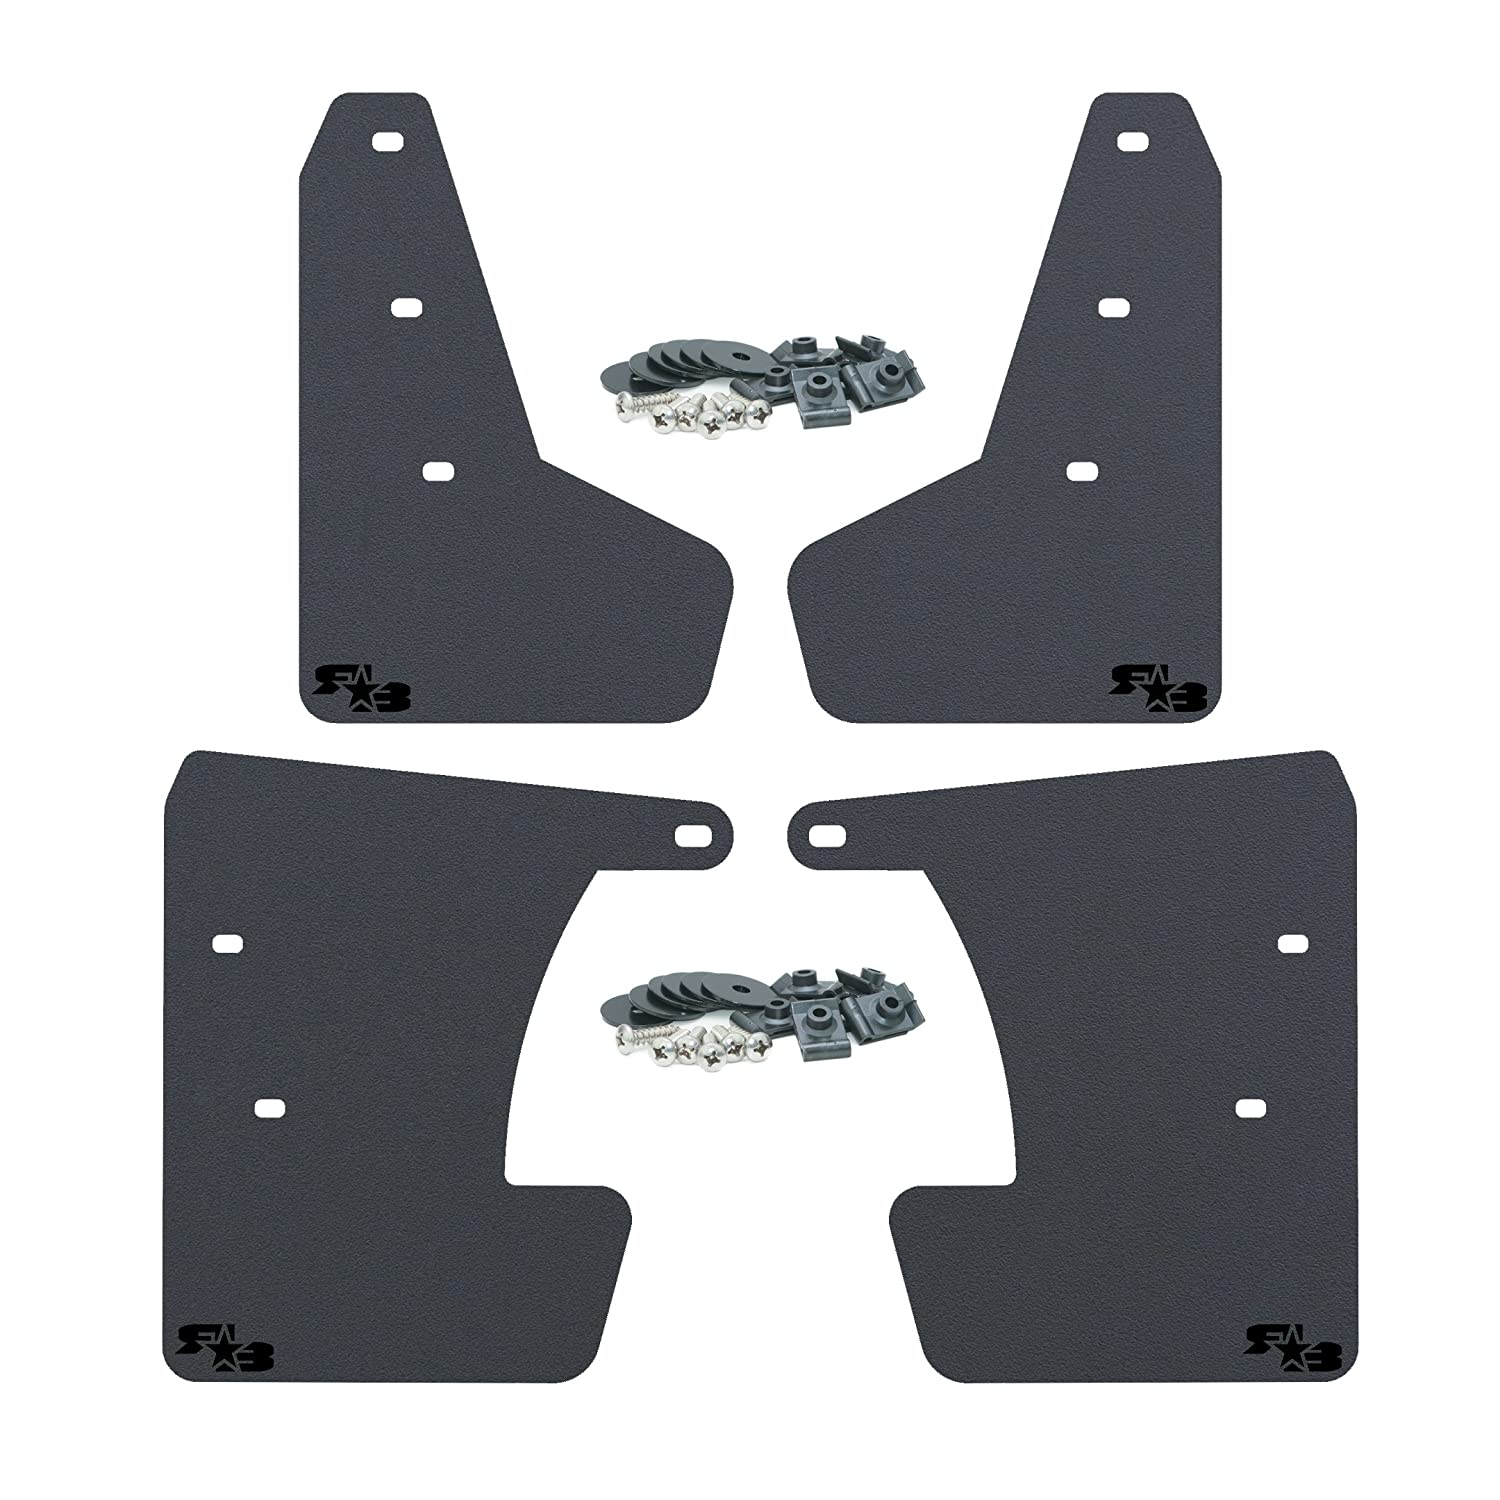 Multiple Colors Available Includes All Mounting Hardware RokBlokz Mud Flaps for 2017 Mud Guards are Custom Cut and Fit Lime Green with Black Logo, Original Subaru Impreza